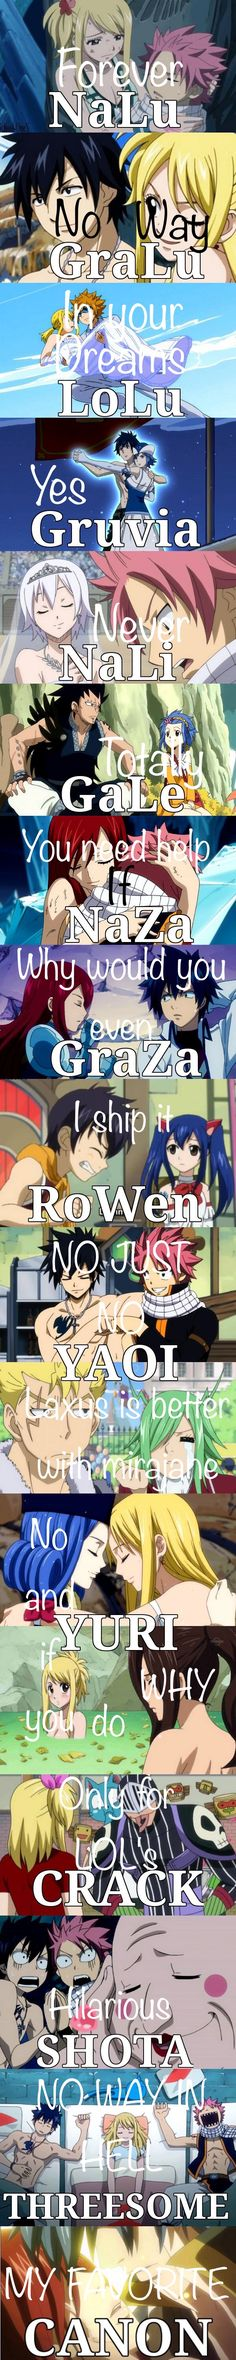 Some of them, like NaLu, GruVia, Gale and JeRza have been officially showed as canon, even subtly in the last chapter.